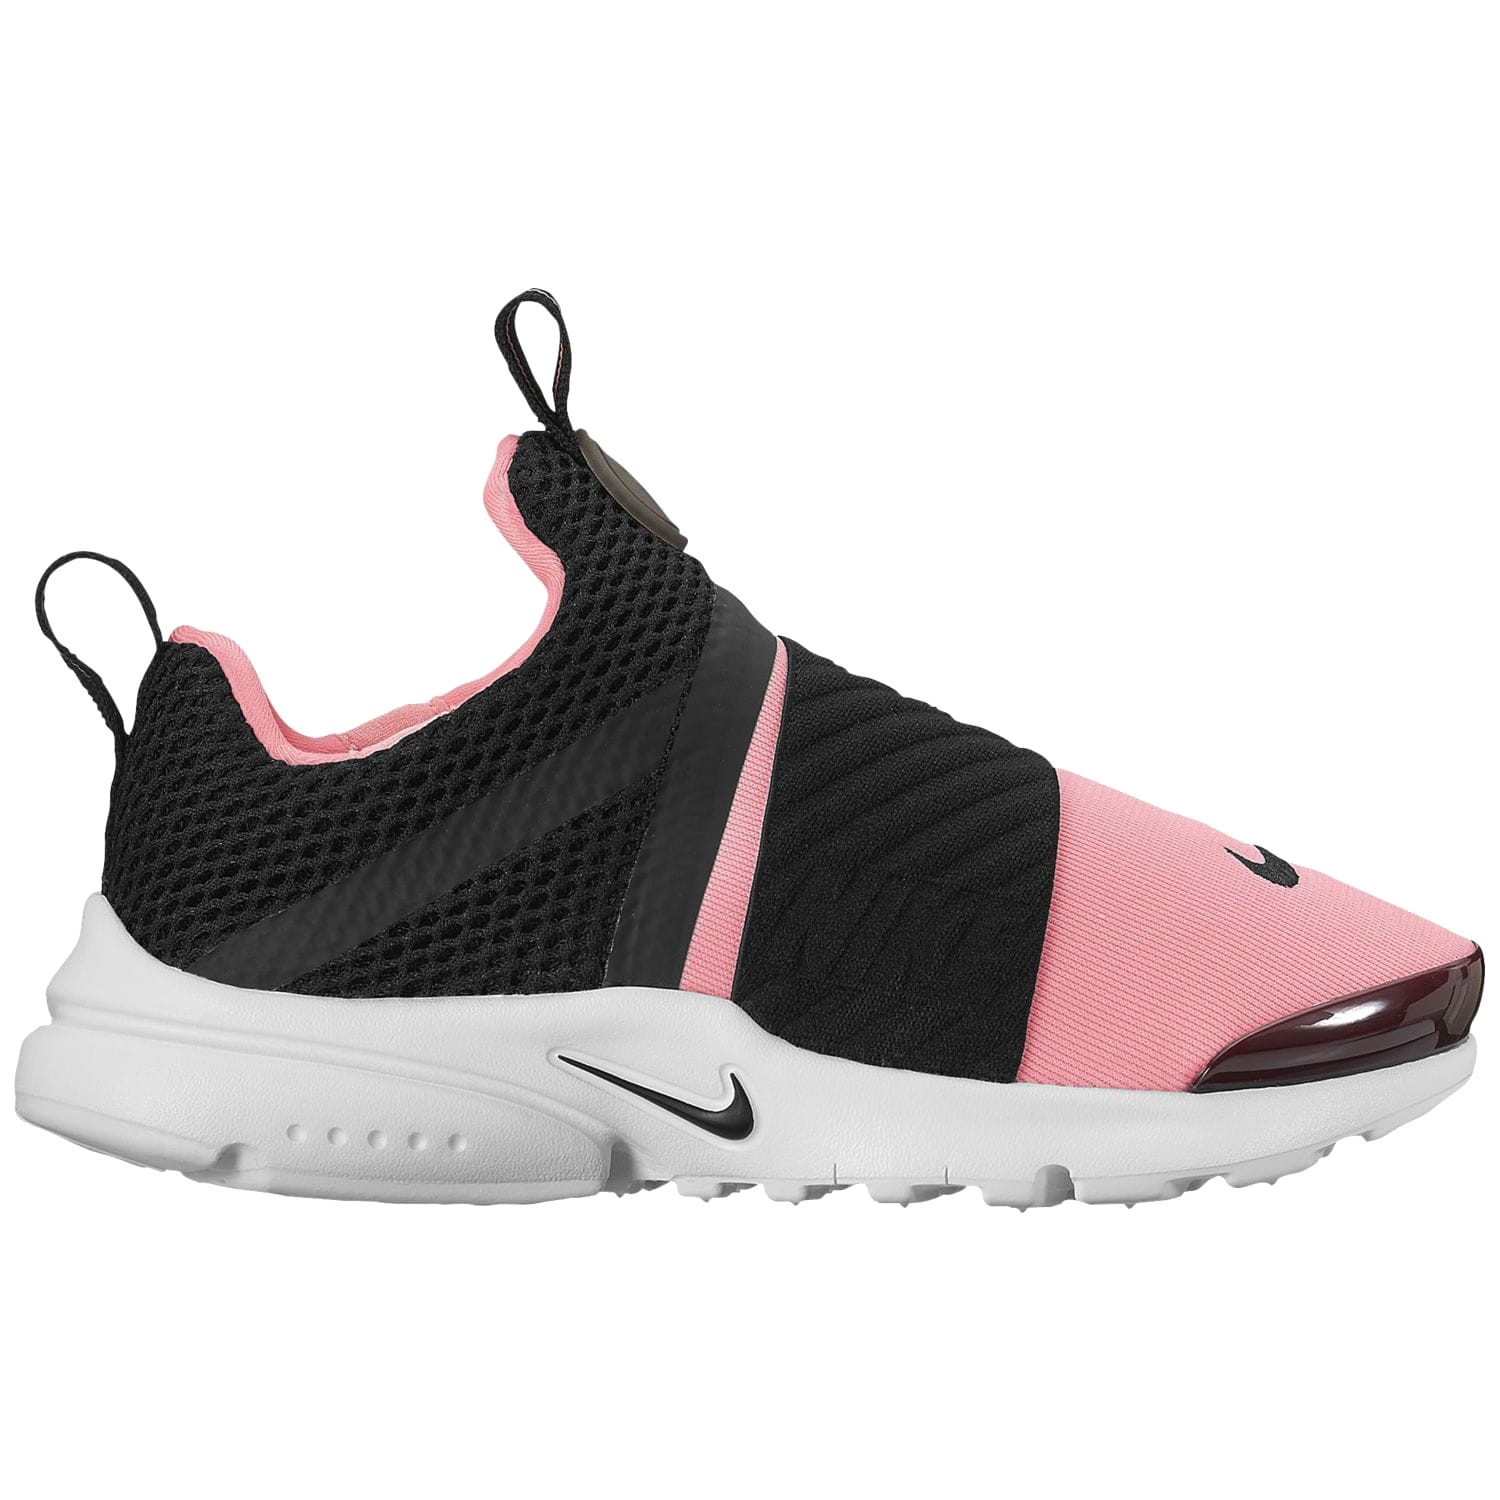 Nike png. Running shoes transparent image